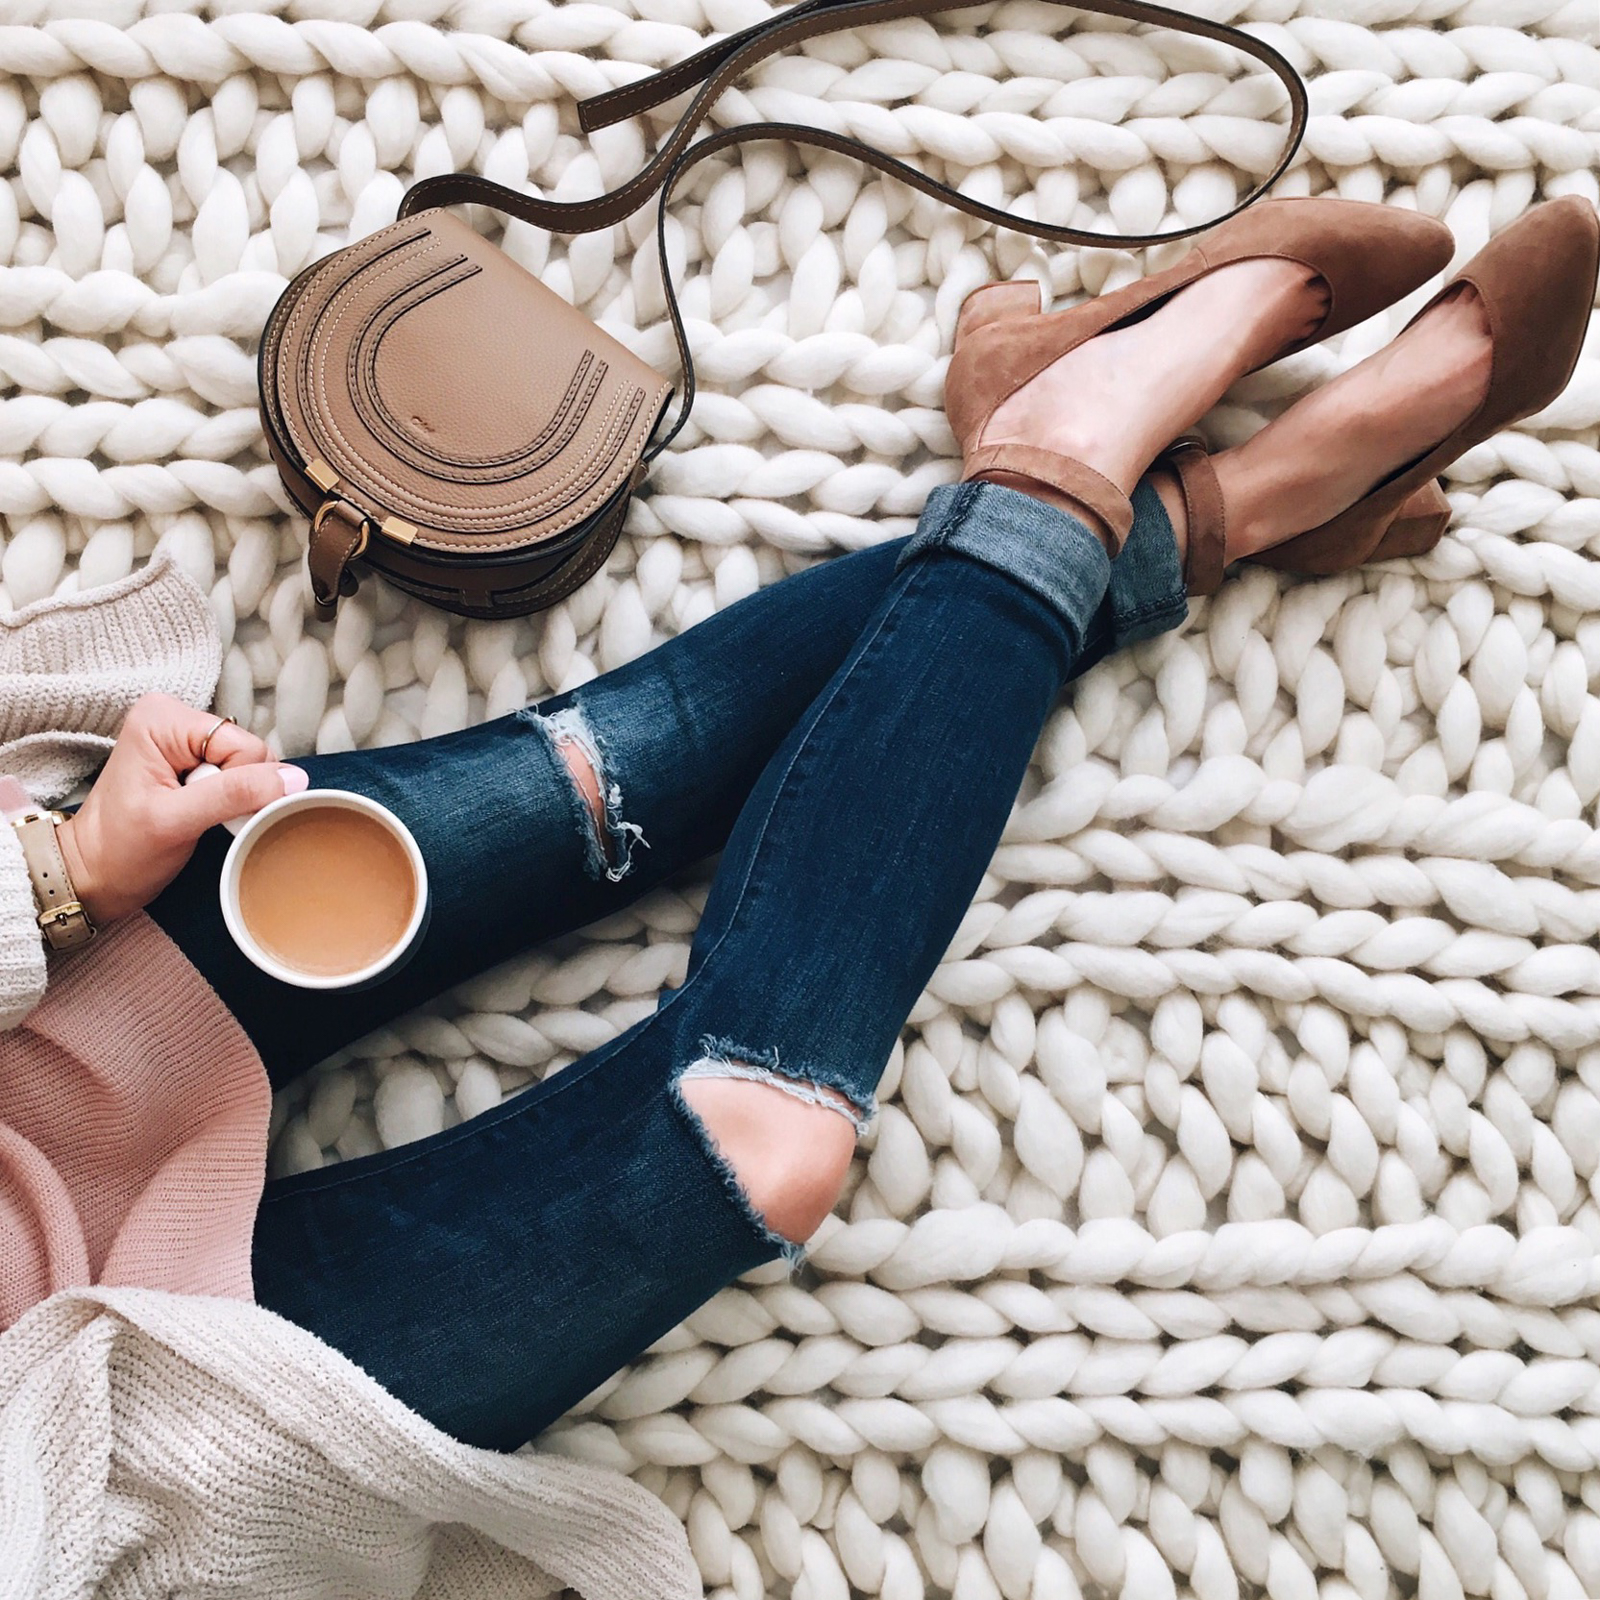 livvyland-blog-olivia-watson-instagram-roundup-austin-texas-cozy-winter-outfit-coffee-cozy-chloe-marcie